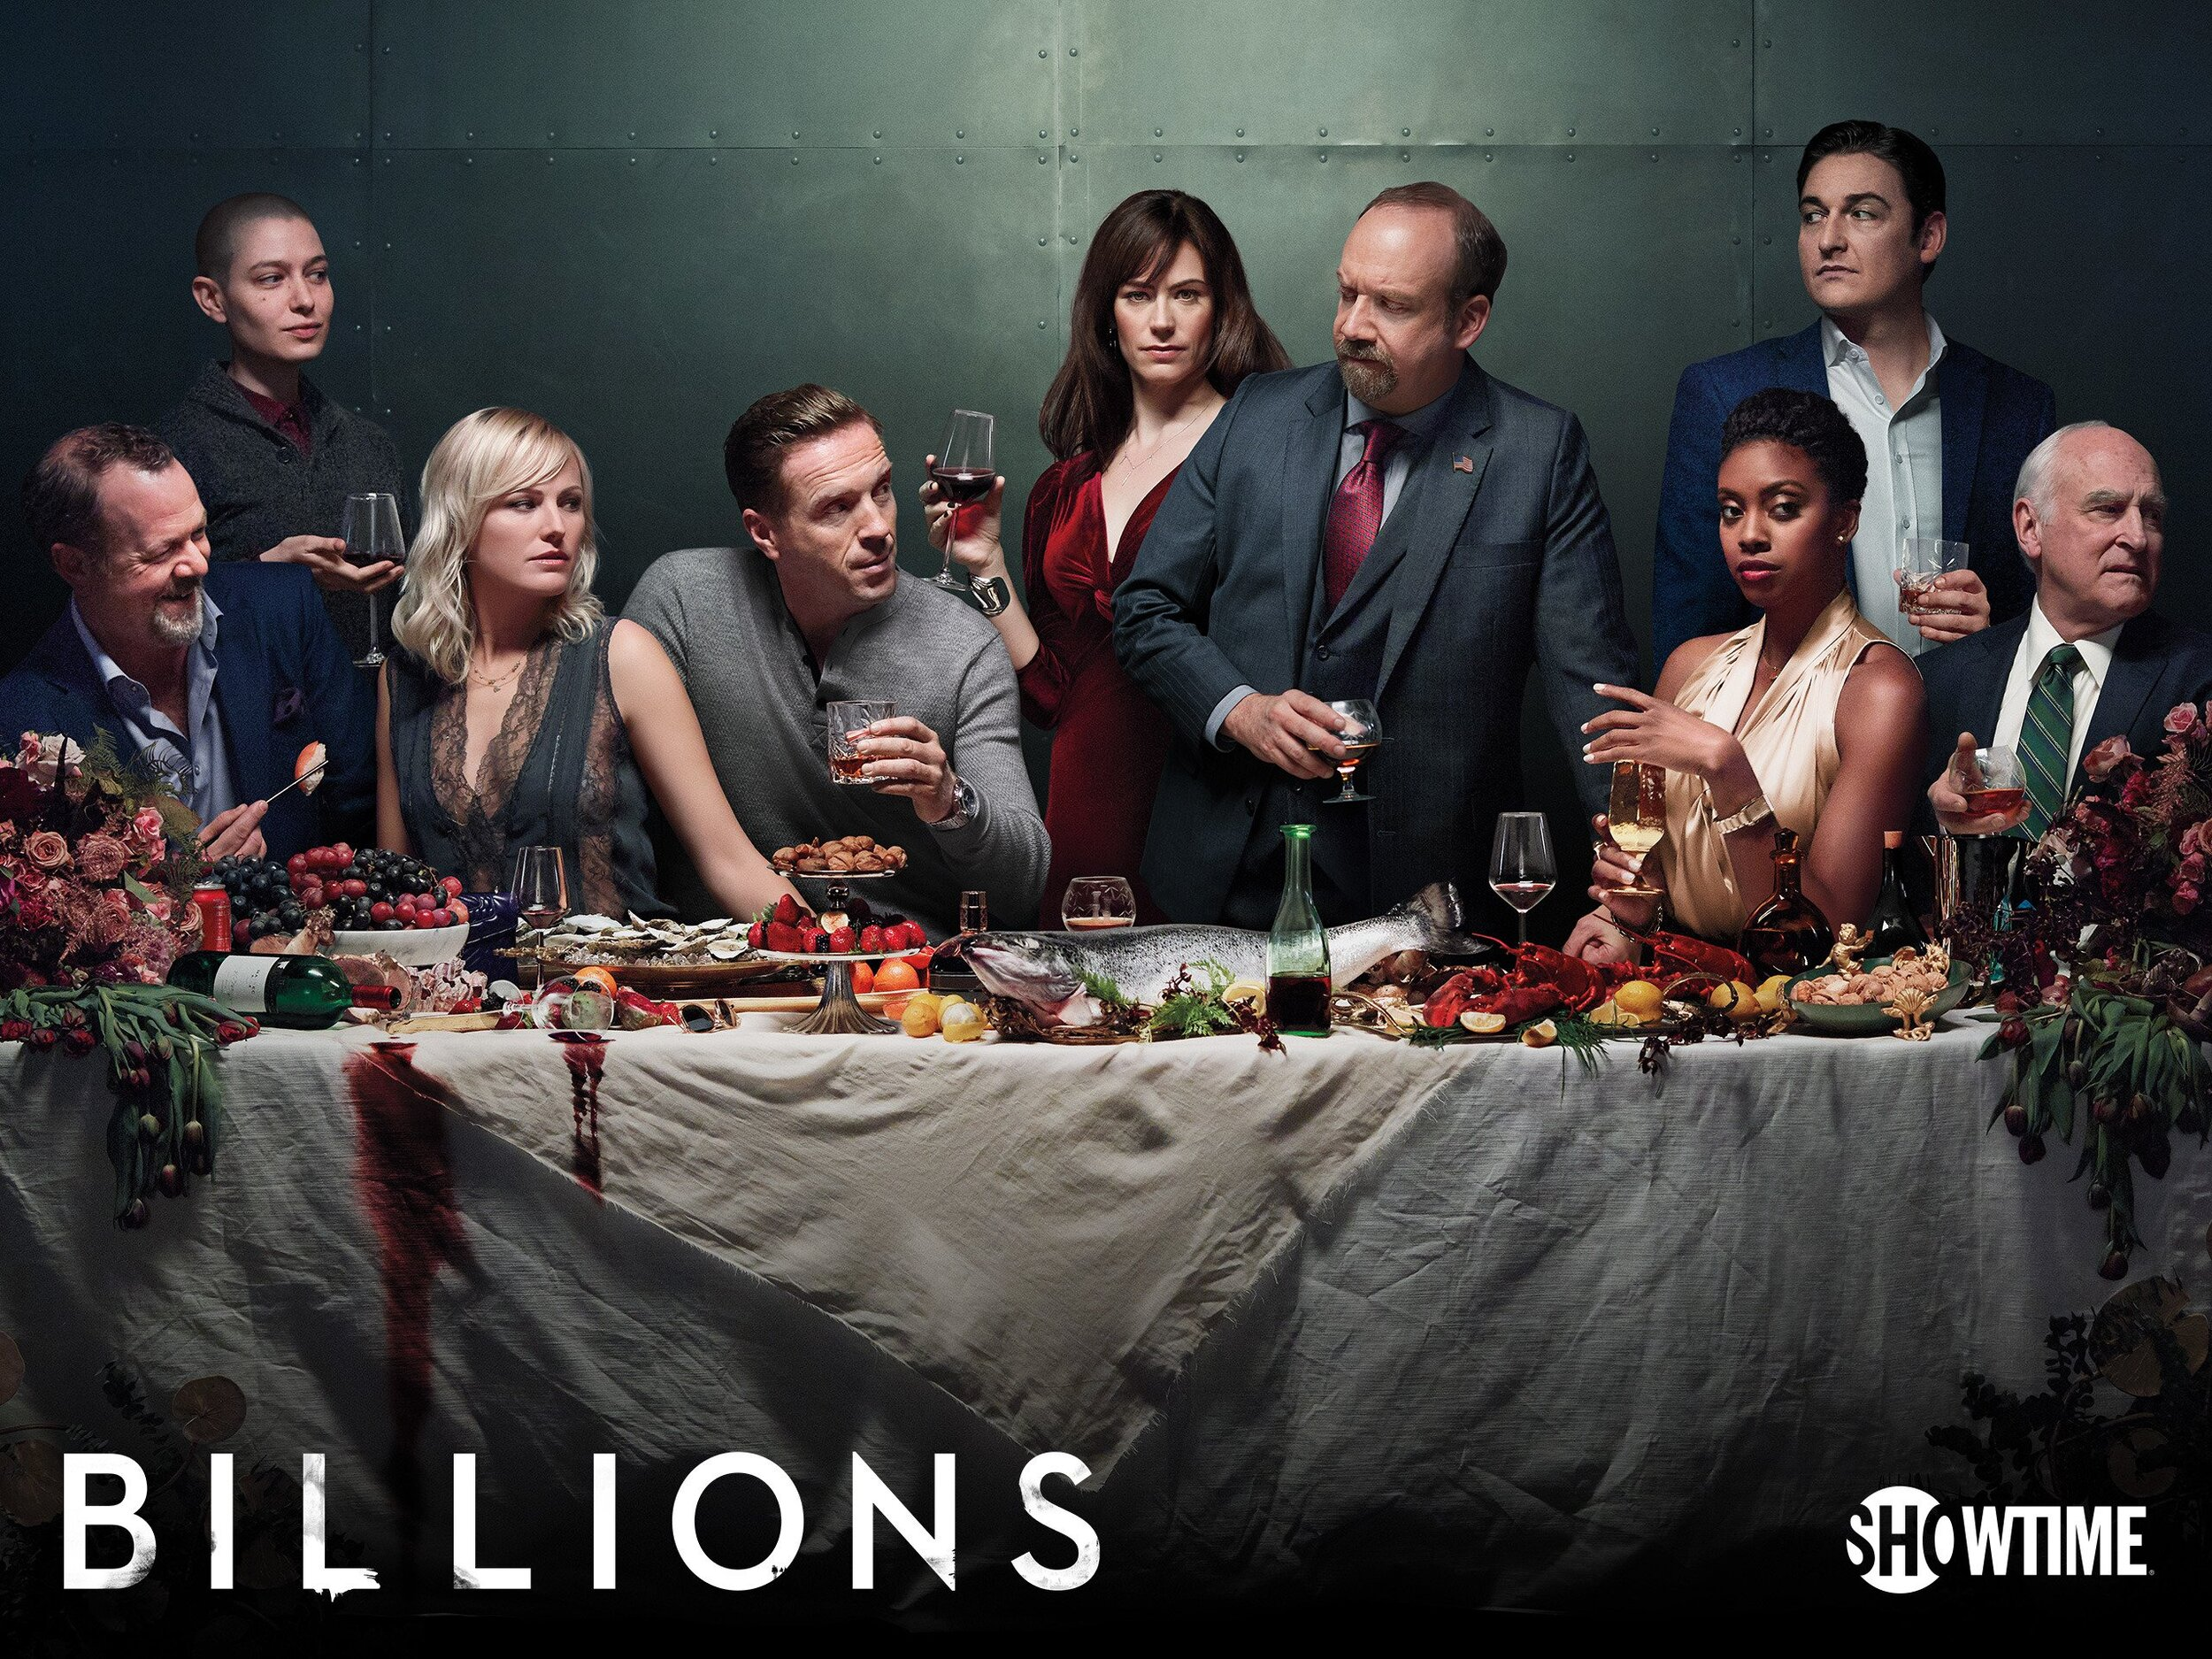 Billions: Wealth, influence and corruption collide in this drama set in New York.